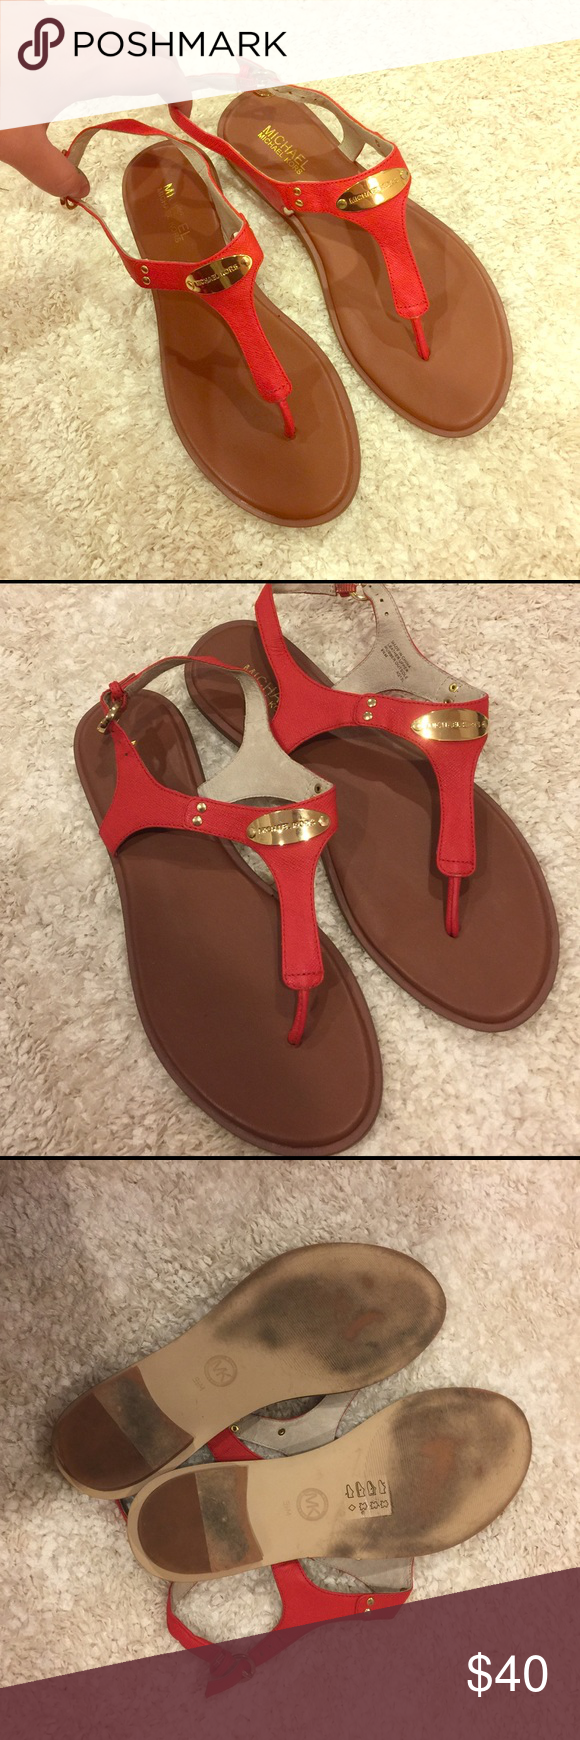 Michael Kors Leather Saffiano Sandals Authentic MK sandals with gold plate logo! They are a deep tangerine leather and are size 10. Exterior and interior in good condition, bottoms have marks in picture but overall great condition and stunning 💗 note the straps fall to side for some reason when off(look in picture), BUT are totally fine and have no problems when you strap on your foot 😊 Michael Kors Shoes Sandals